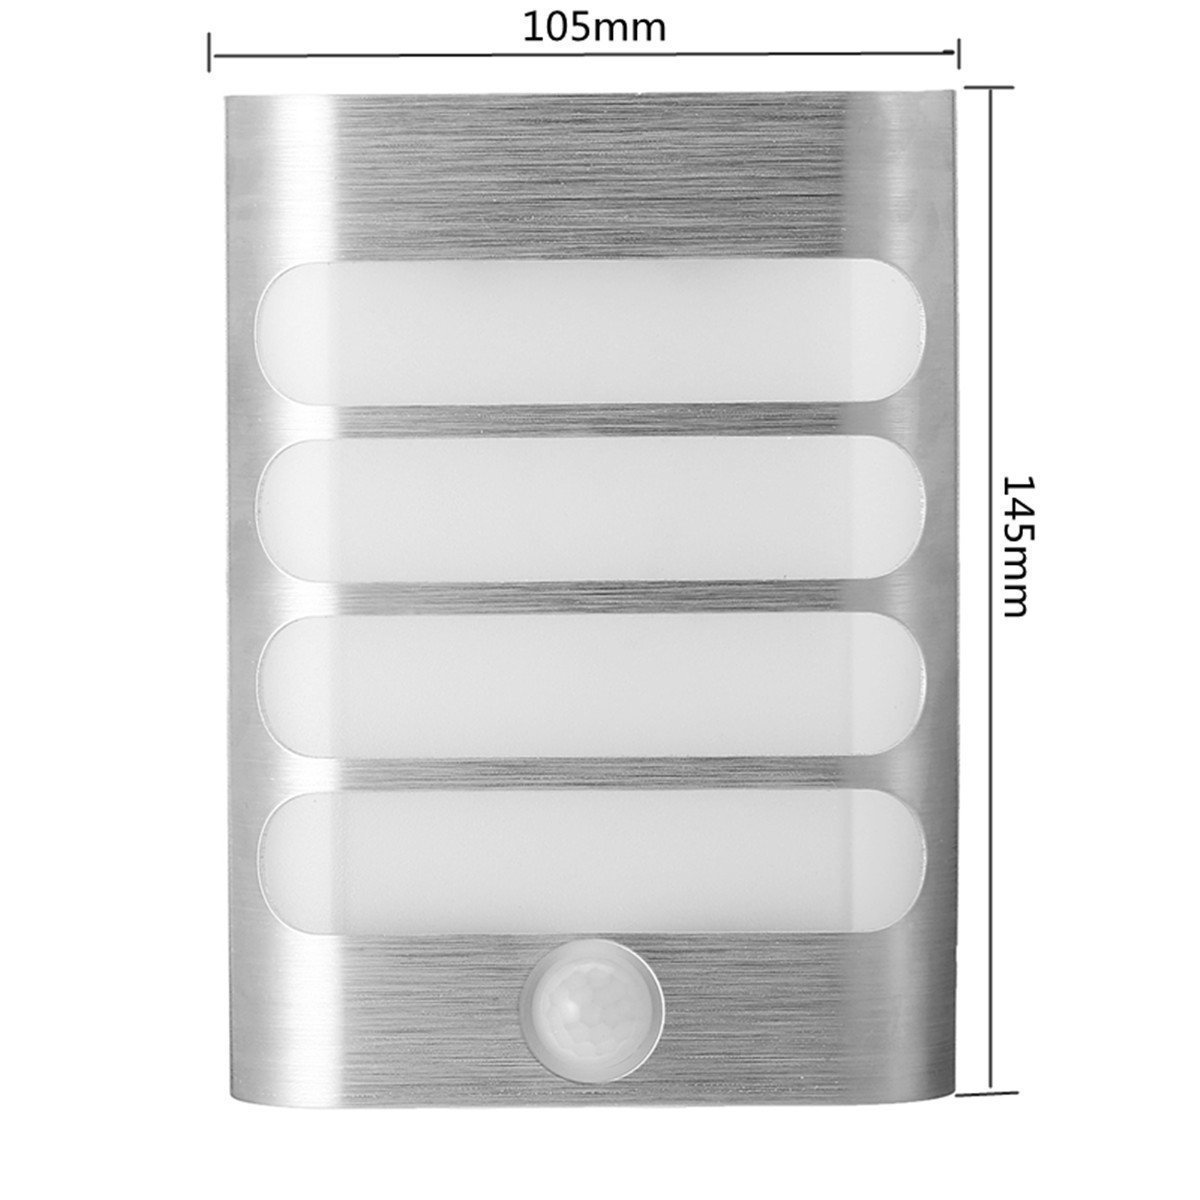 OWIKAR Motion Sensor Activated LED Wall Light, Aluminum Stick Anywhere Bright LED Wall Sconce Night Light Battery Operated, Auto On/Off for Hallway, Closet, Pathway, Staircase, Garden (Warm White)